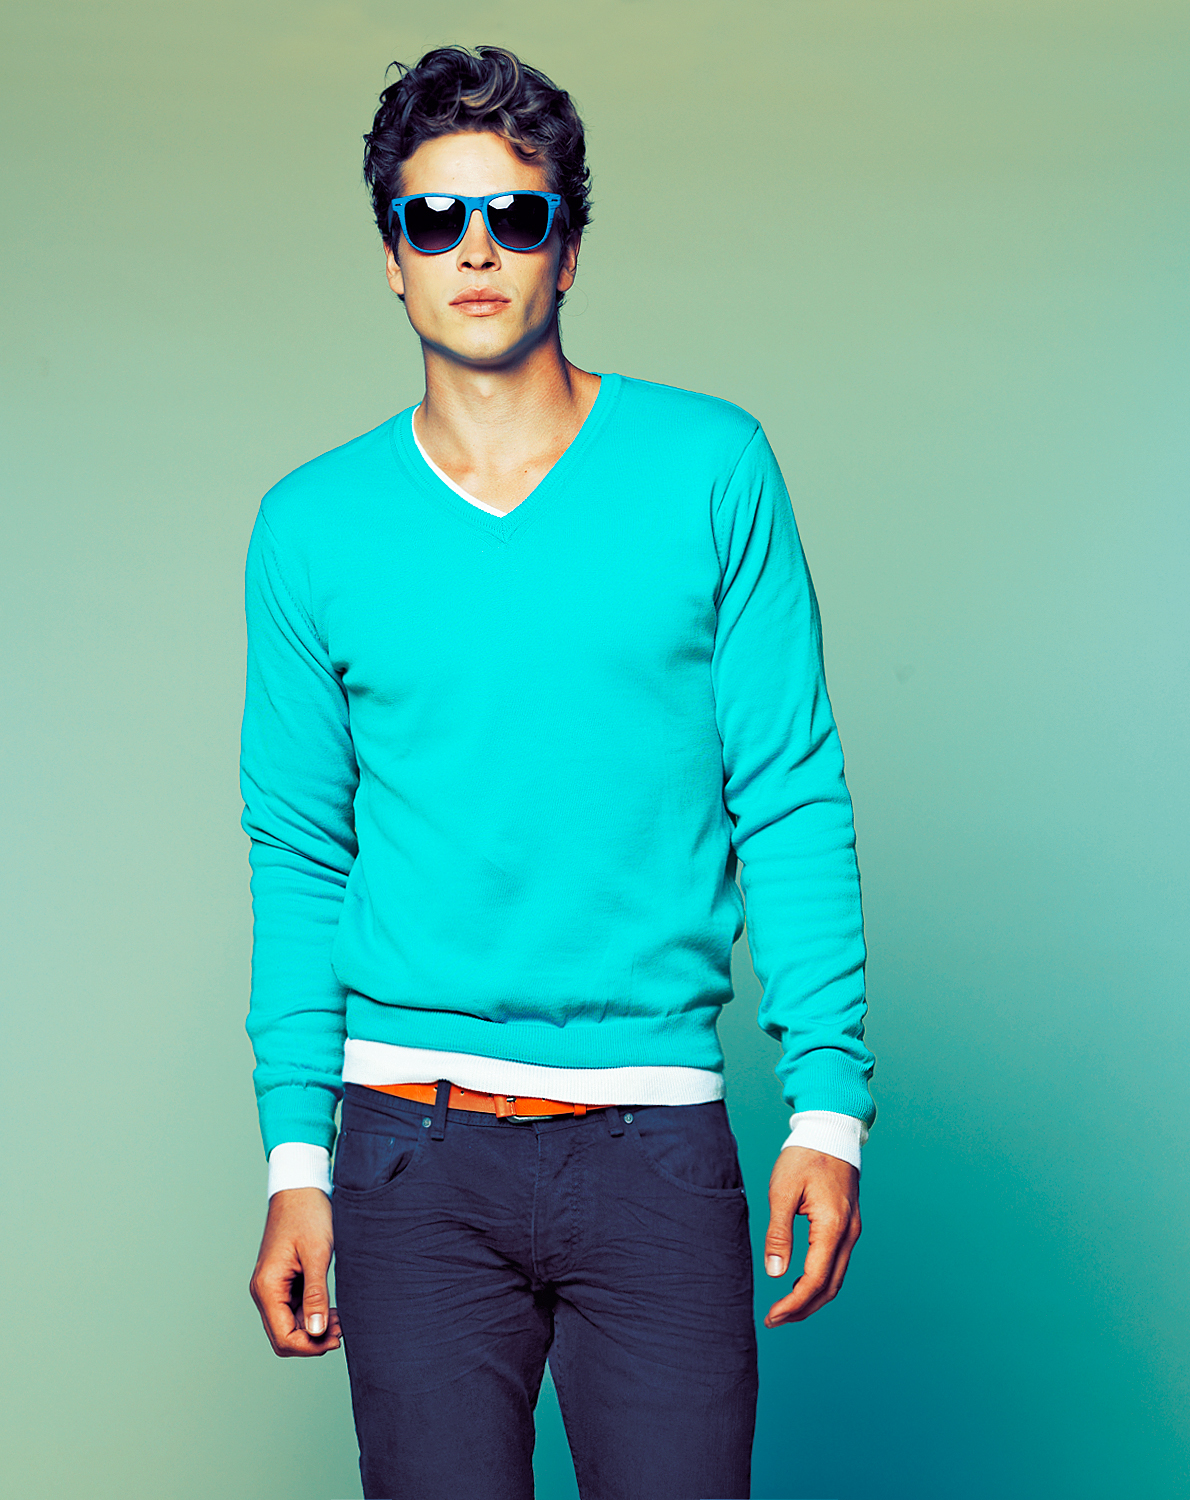 BERSHKA SPRING / SUMMER 2011 FEATURING LEANDRO SOURICE ...